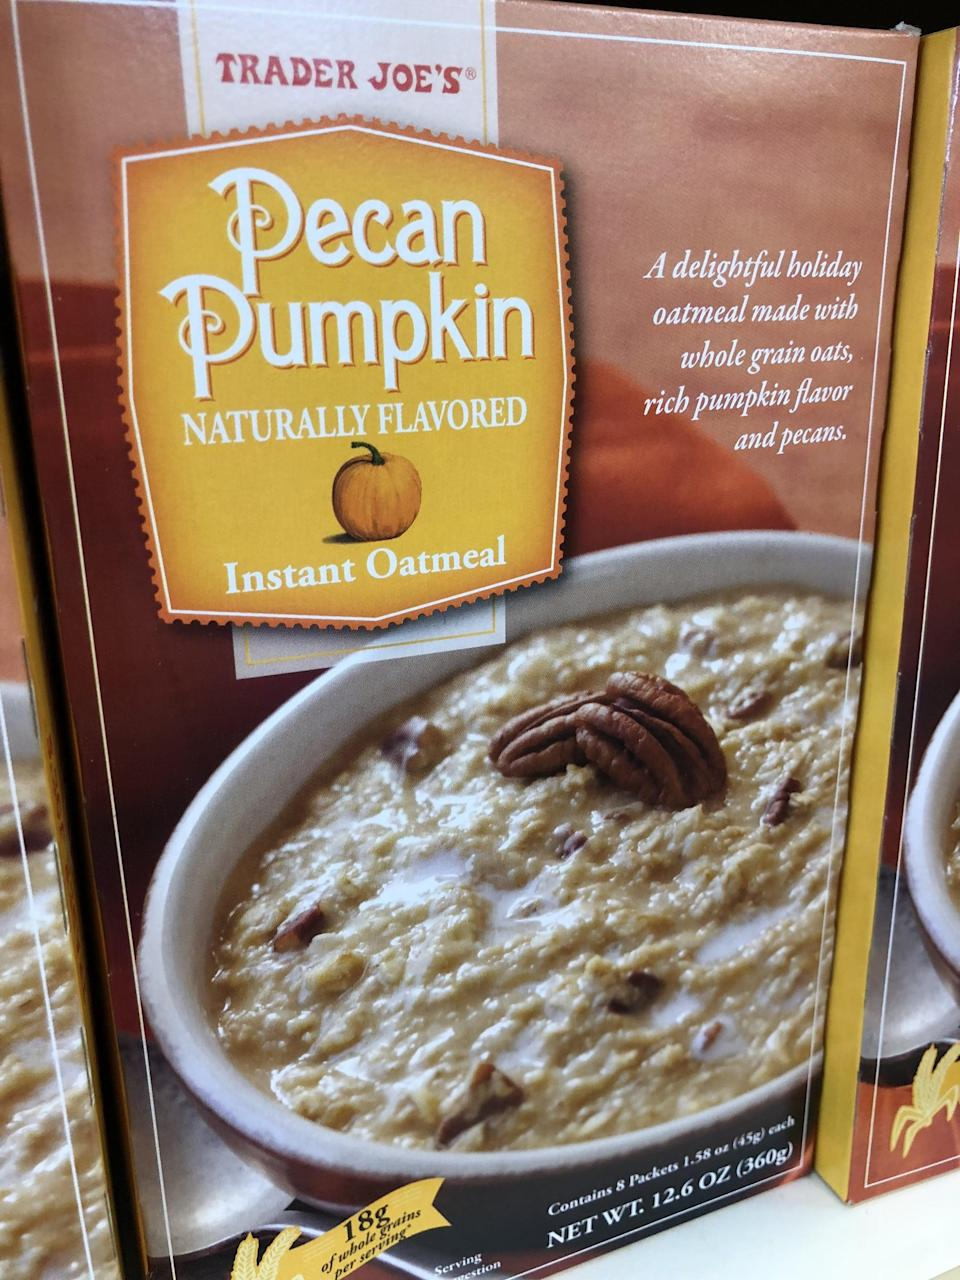 <p>Because these dark mornings are hard, and a warm, toasty bowl of this spiced oatmeal will make everything better.</p>